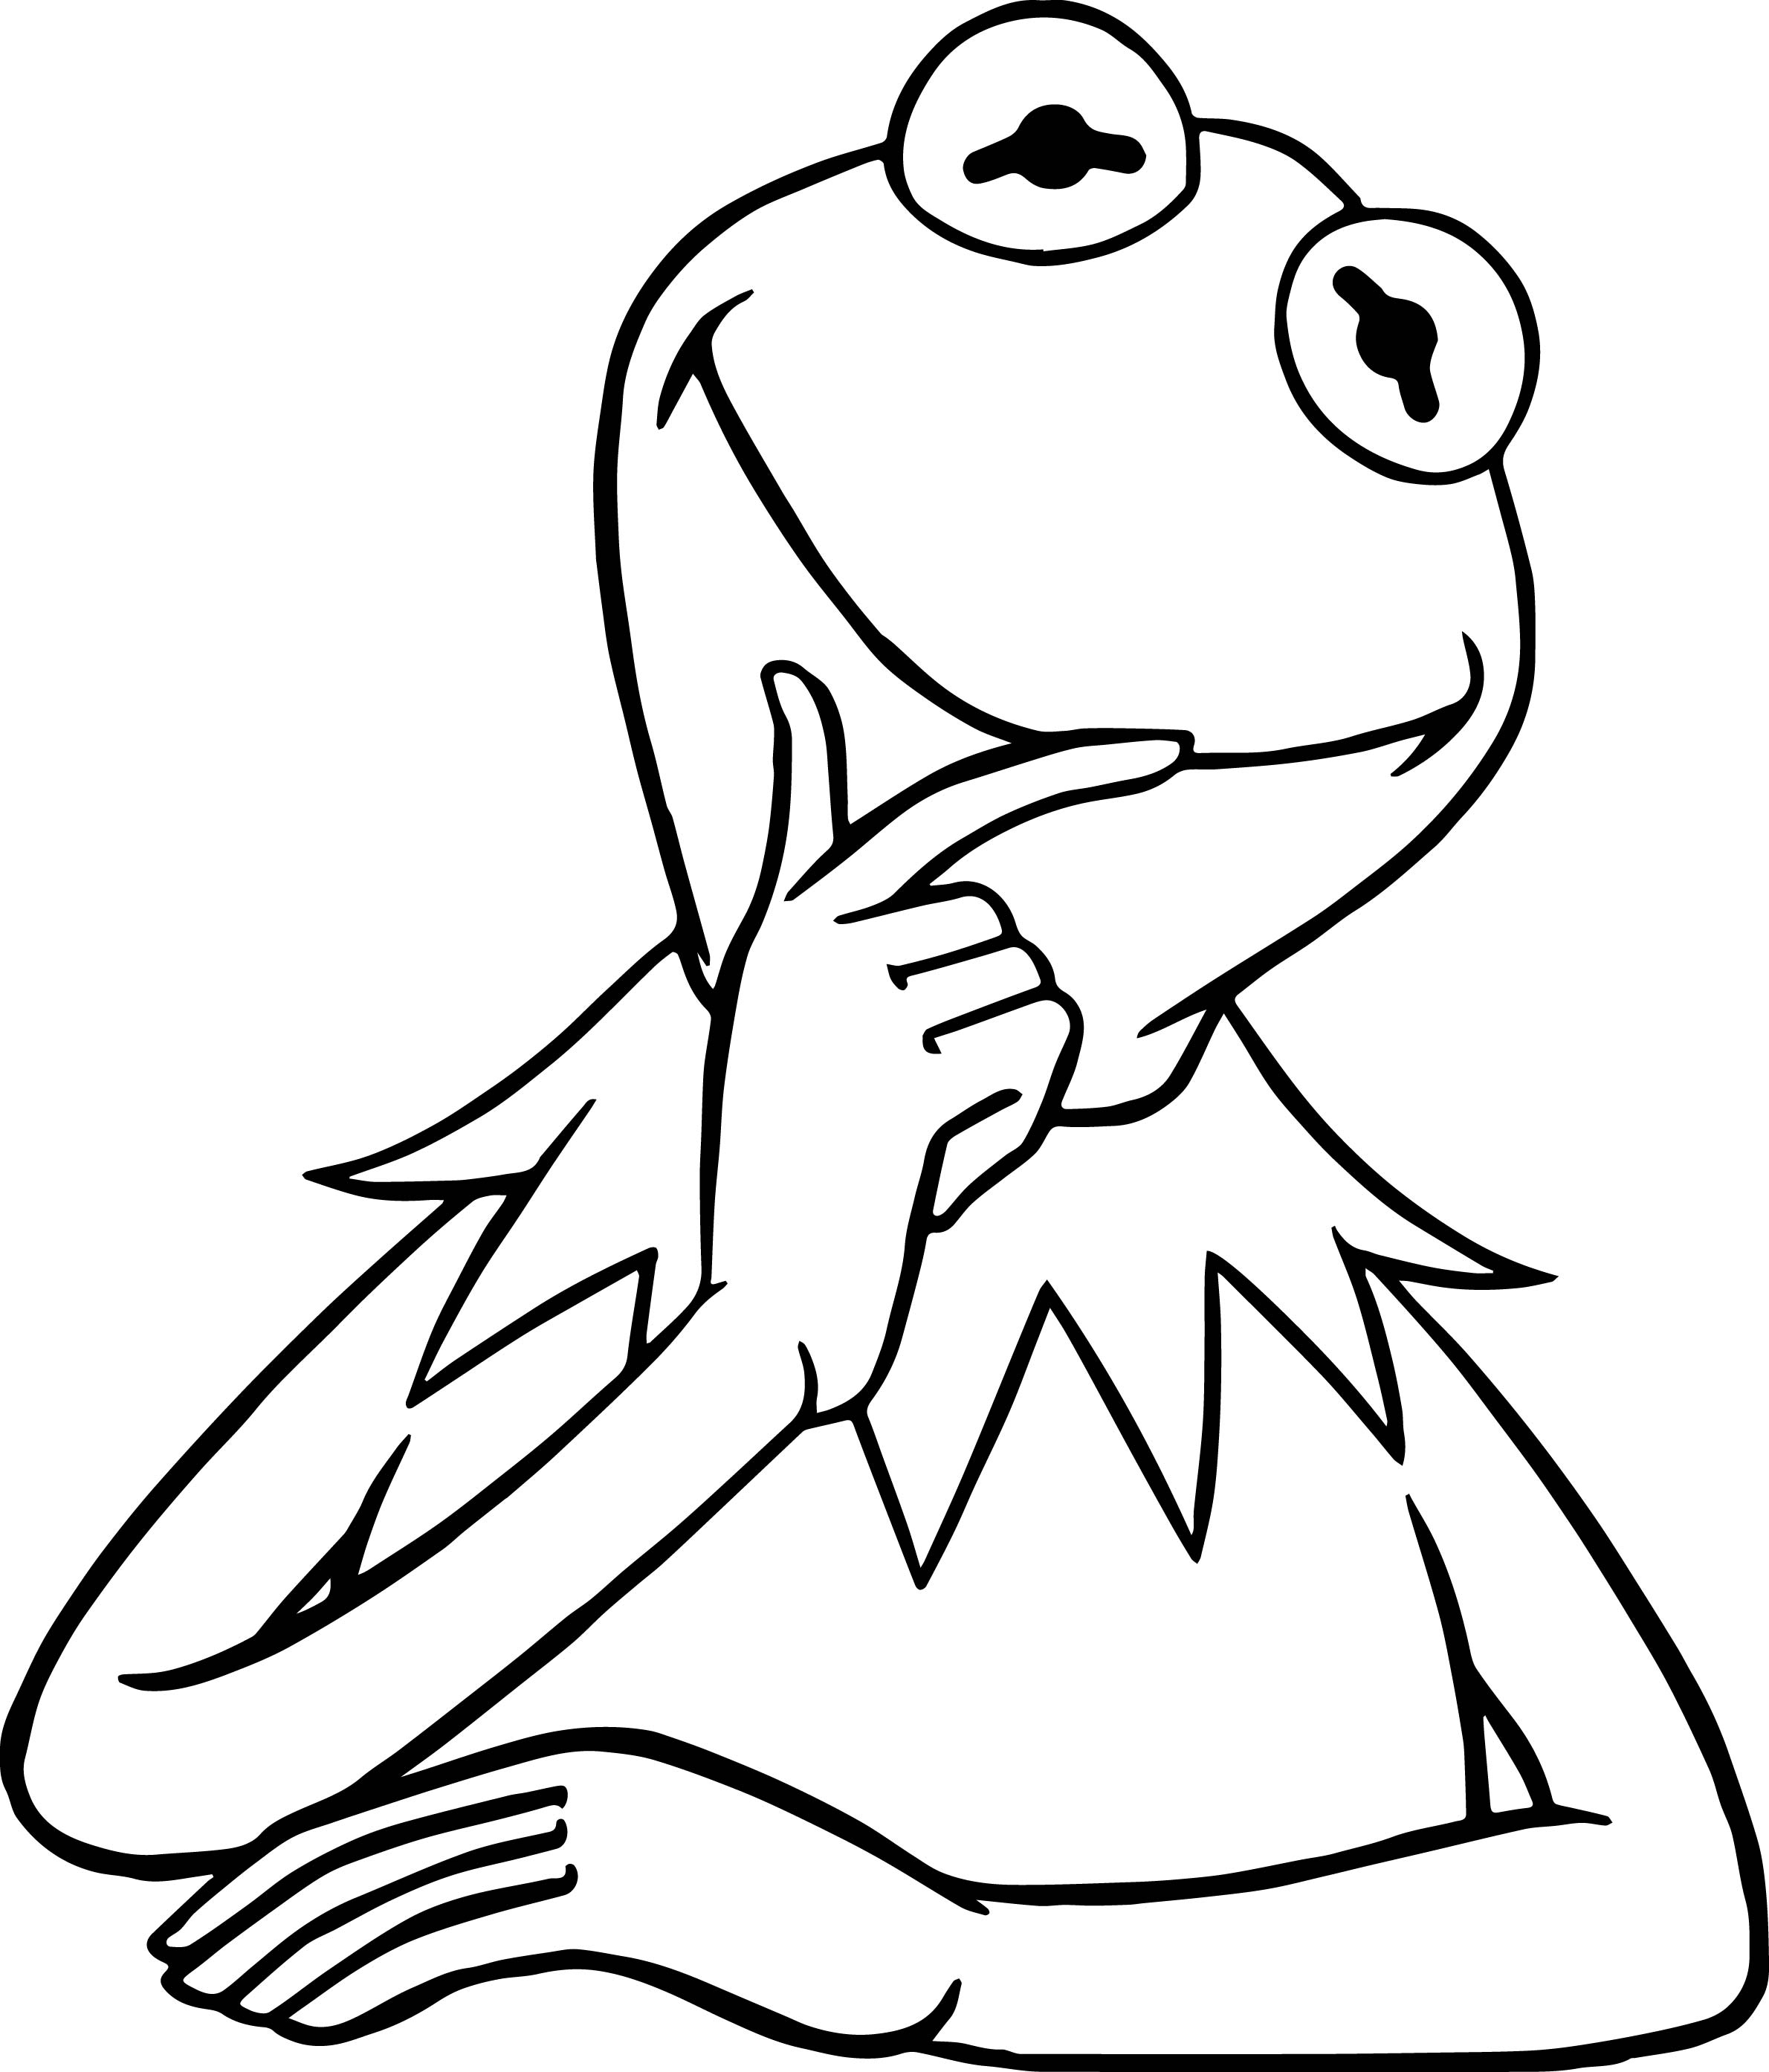 2380x2787 The Muppets Kermit The Frog Think Coloring Pages Wecoloringpage